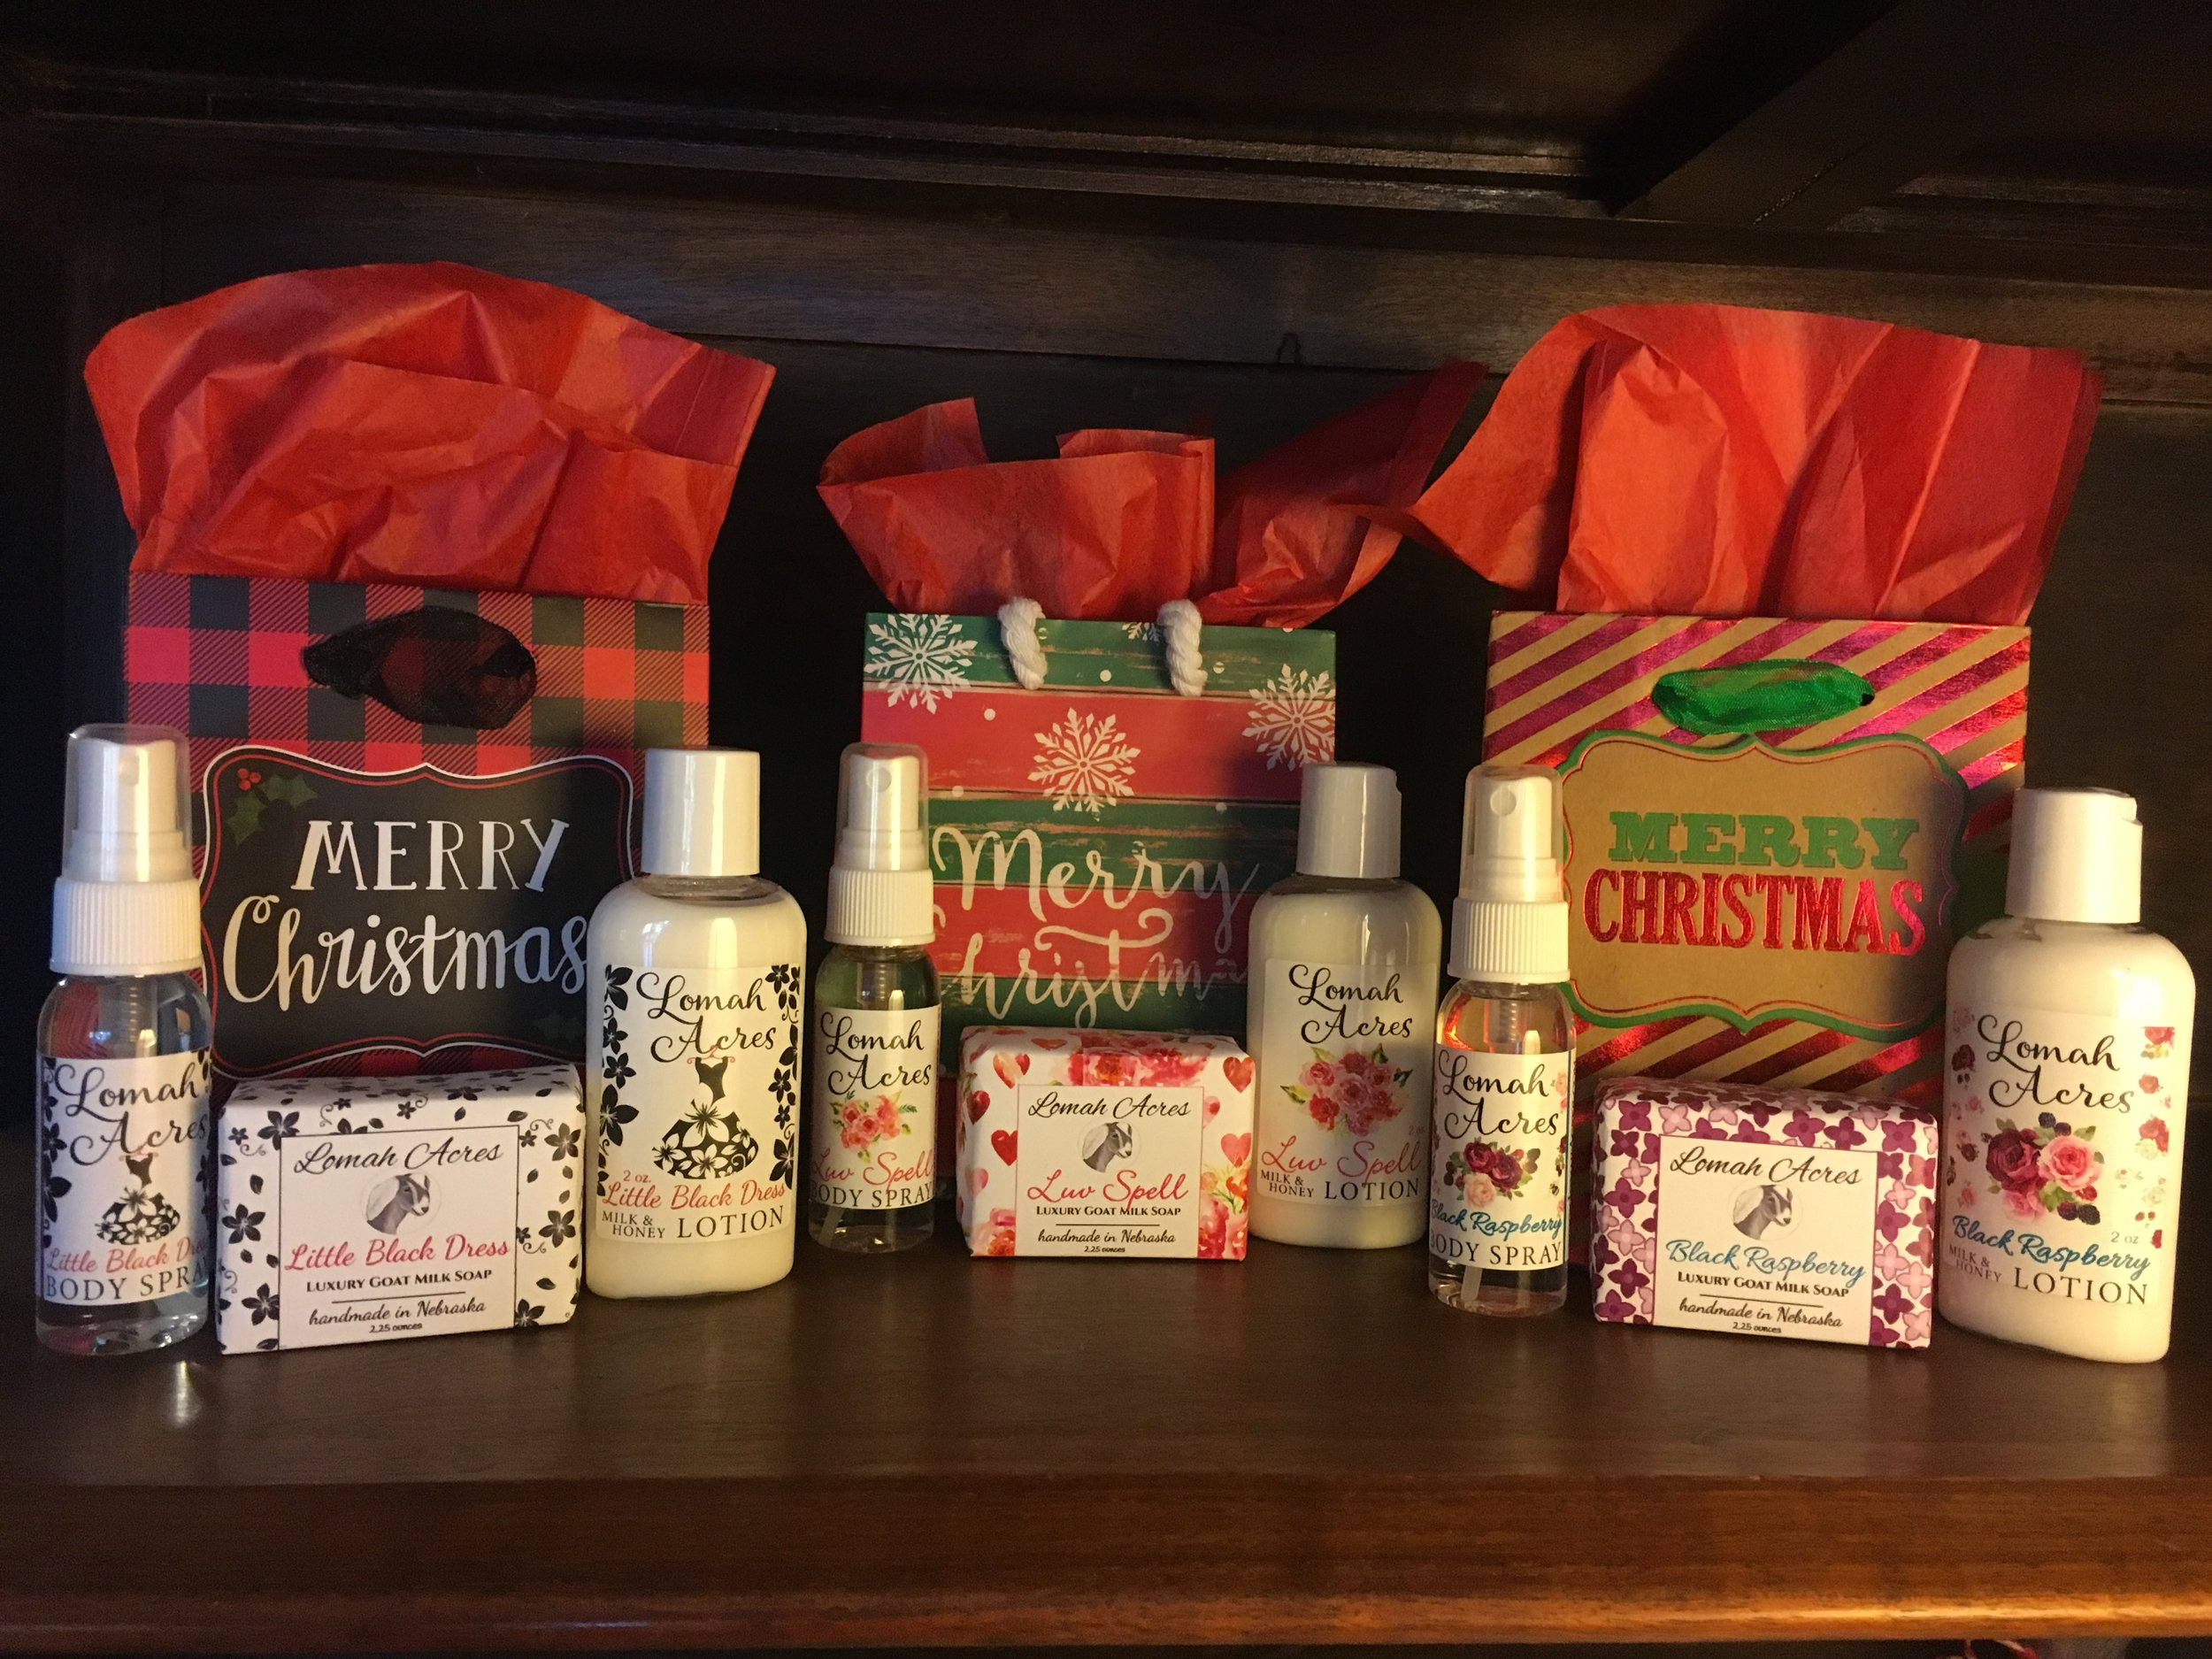 Gift Bags (incl. 1 oz body spray, half soap bar, 2 oz lotion) $10  Available in Little Black Dress, Luv Spell, Black Raspberry